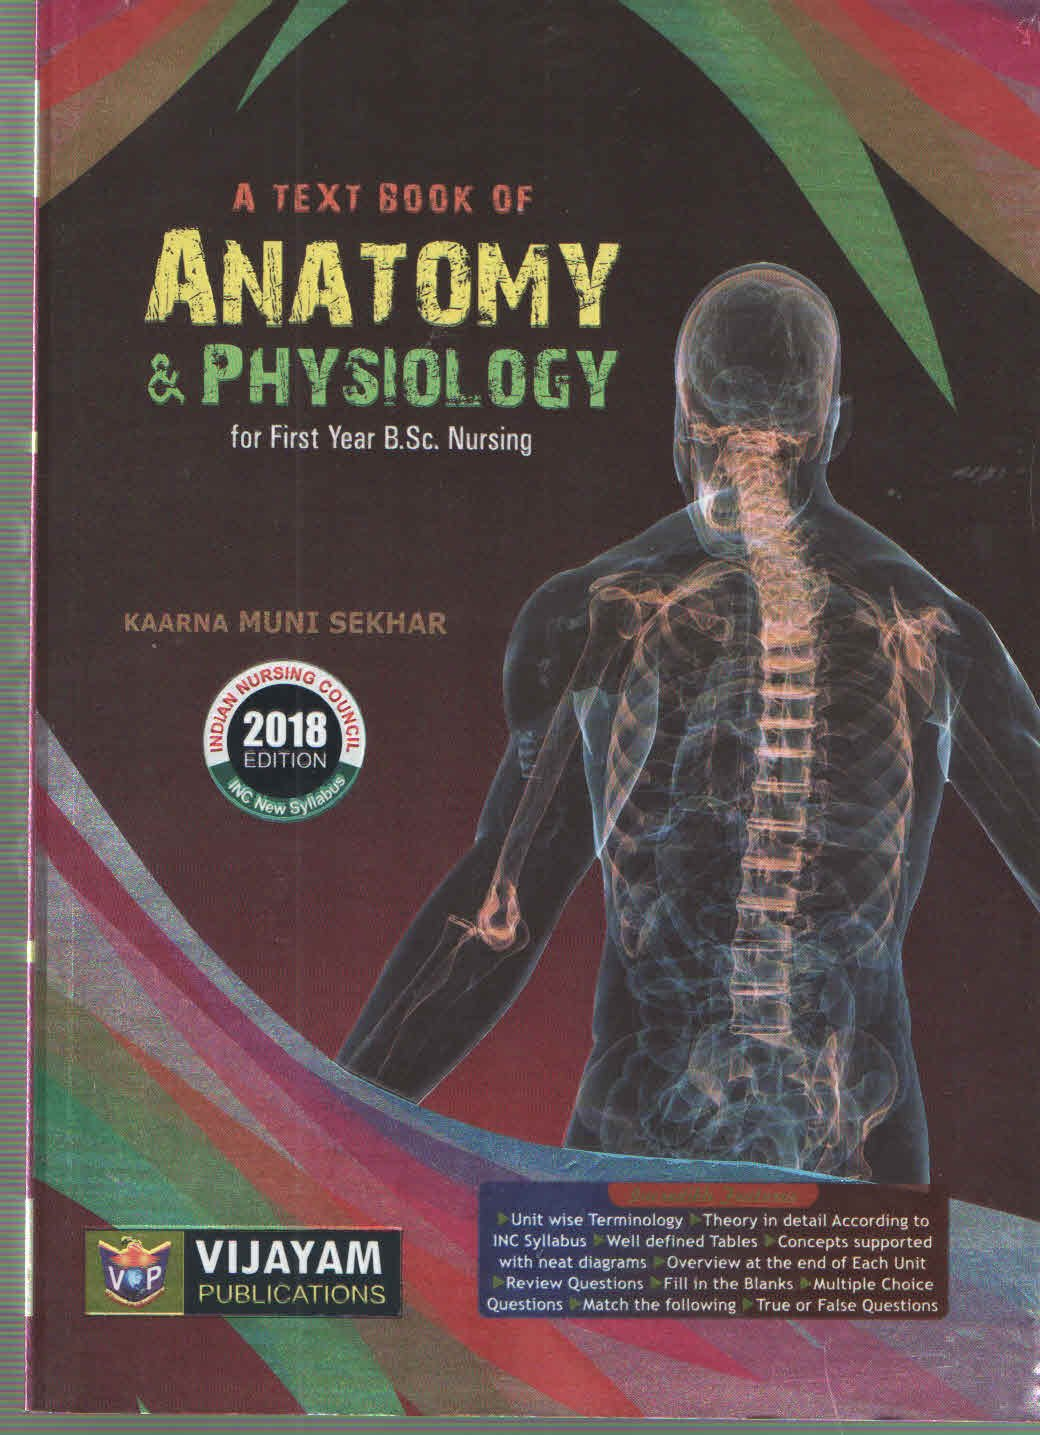 Amazon.in: Buy A Text Book Of Anotomy And Physiology Book Online at ...